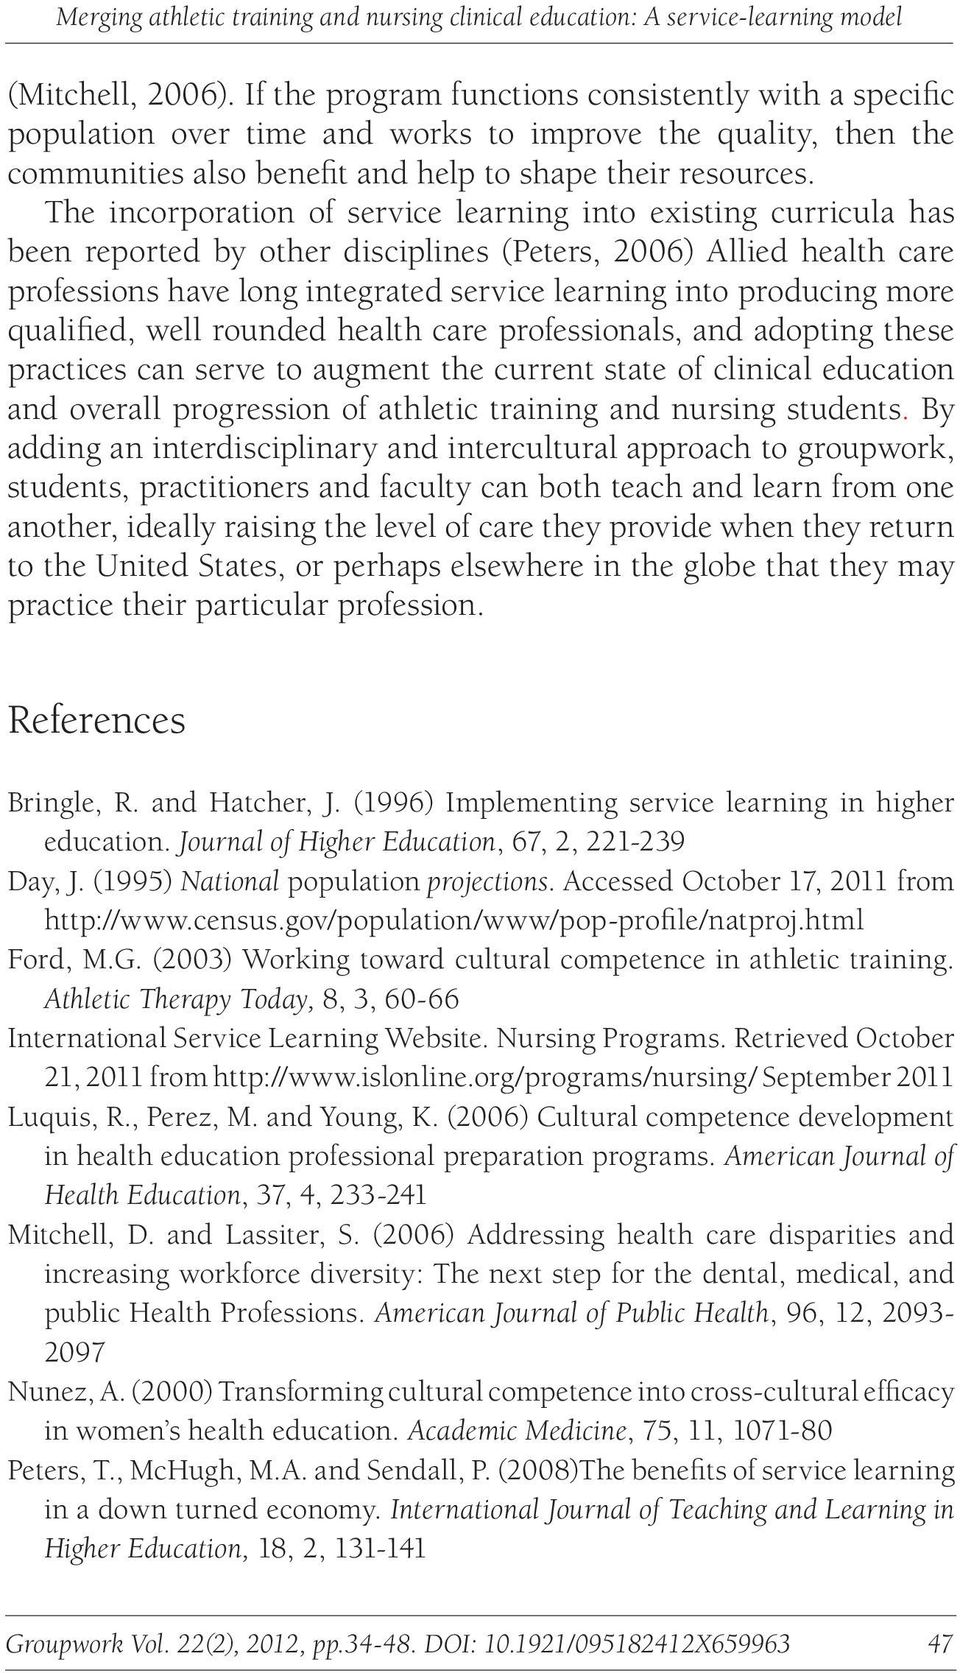 The incorporation of service learning into existing curricula has been reported by other disciplines (Peters, 2006) Allied health care professions have long integrated service learning into producing